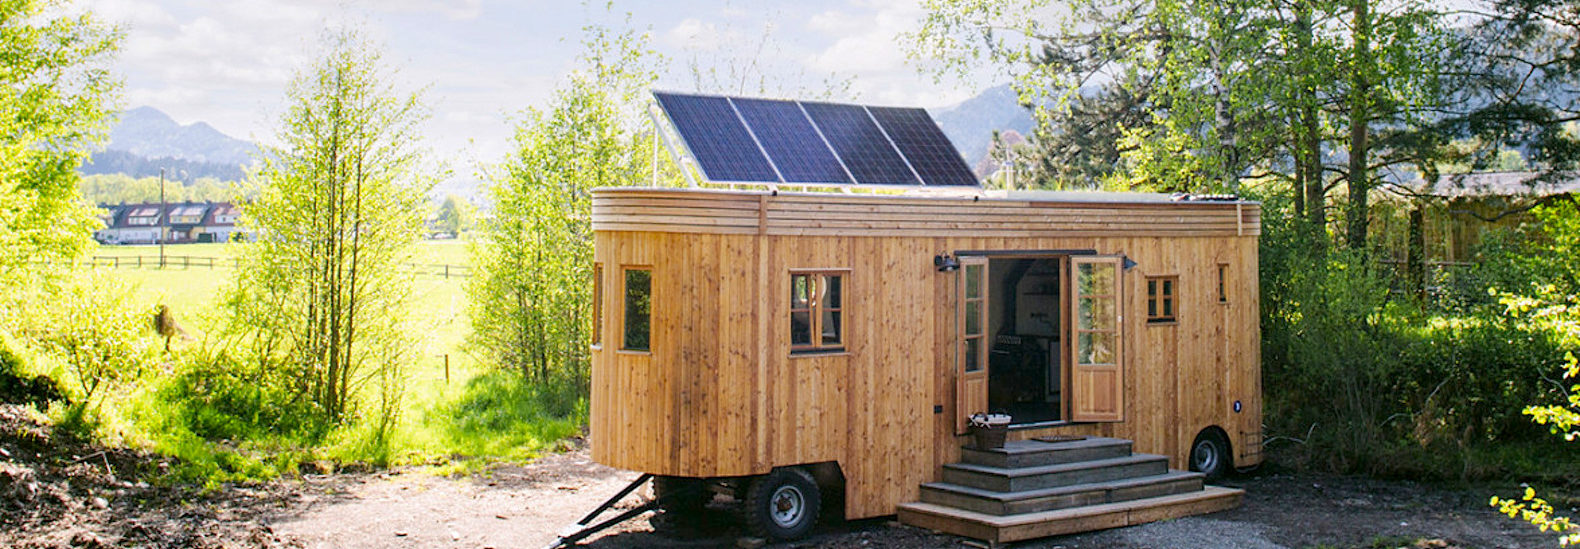 Wonderful 7 Charming Off Grid Homes For A Rent Free Life